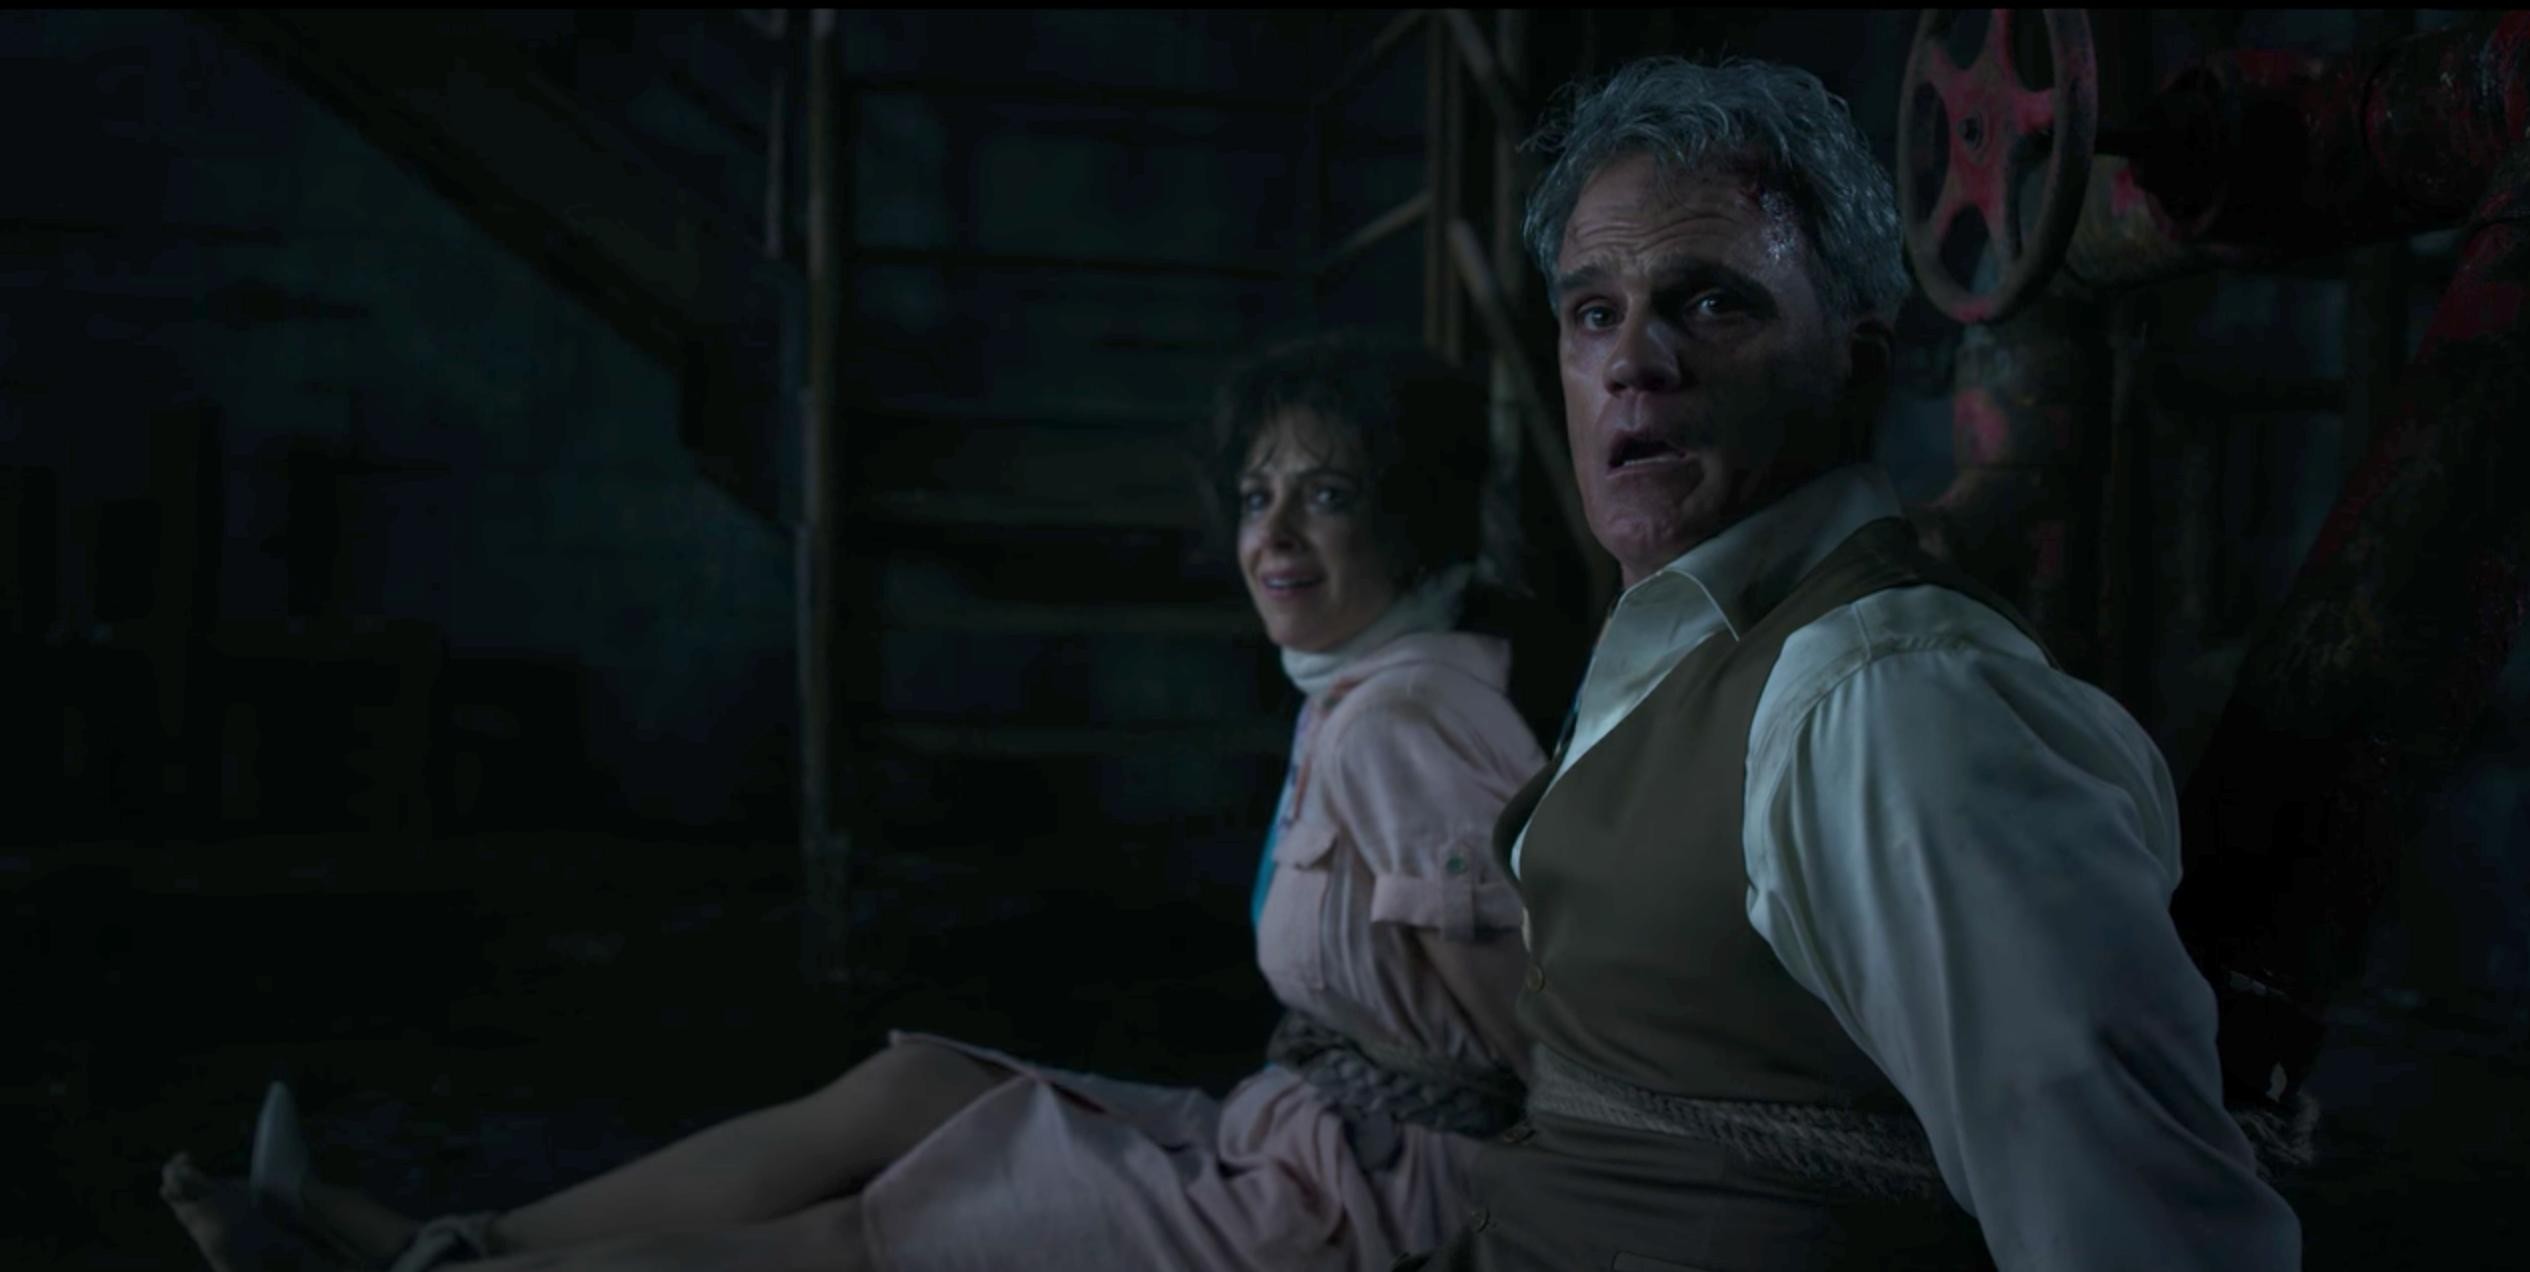 Michael Park and Holly A. Morris in Stranger Things (2016)